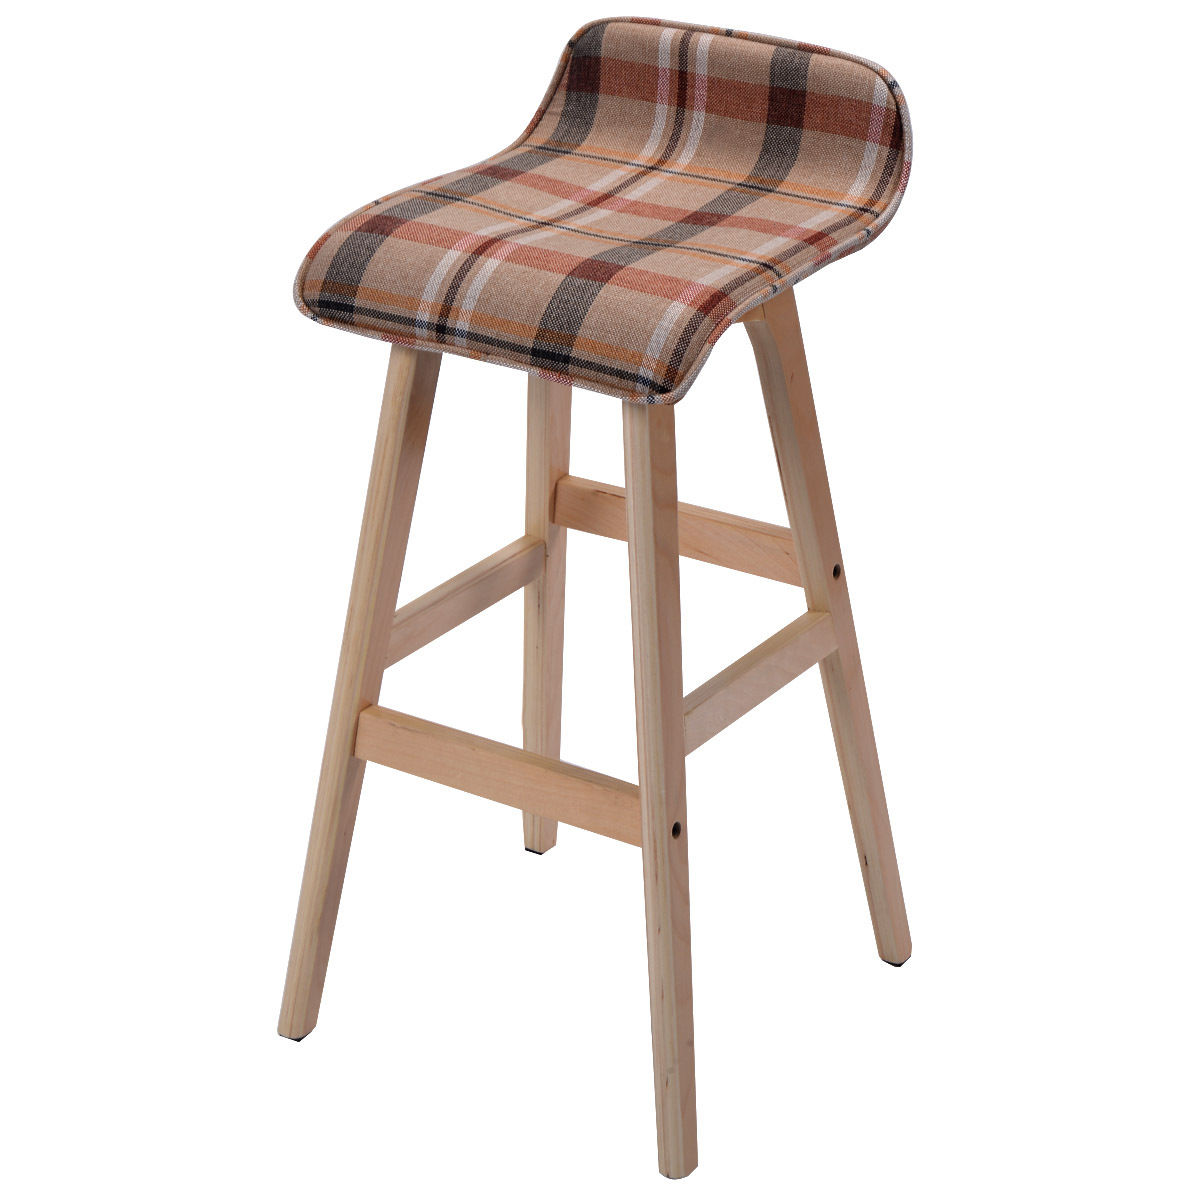 swivel chair definition kitchen covers for sale vintage wooden bar stools. cool wood stools with latest ...